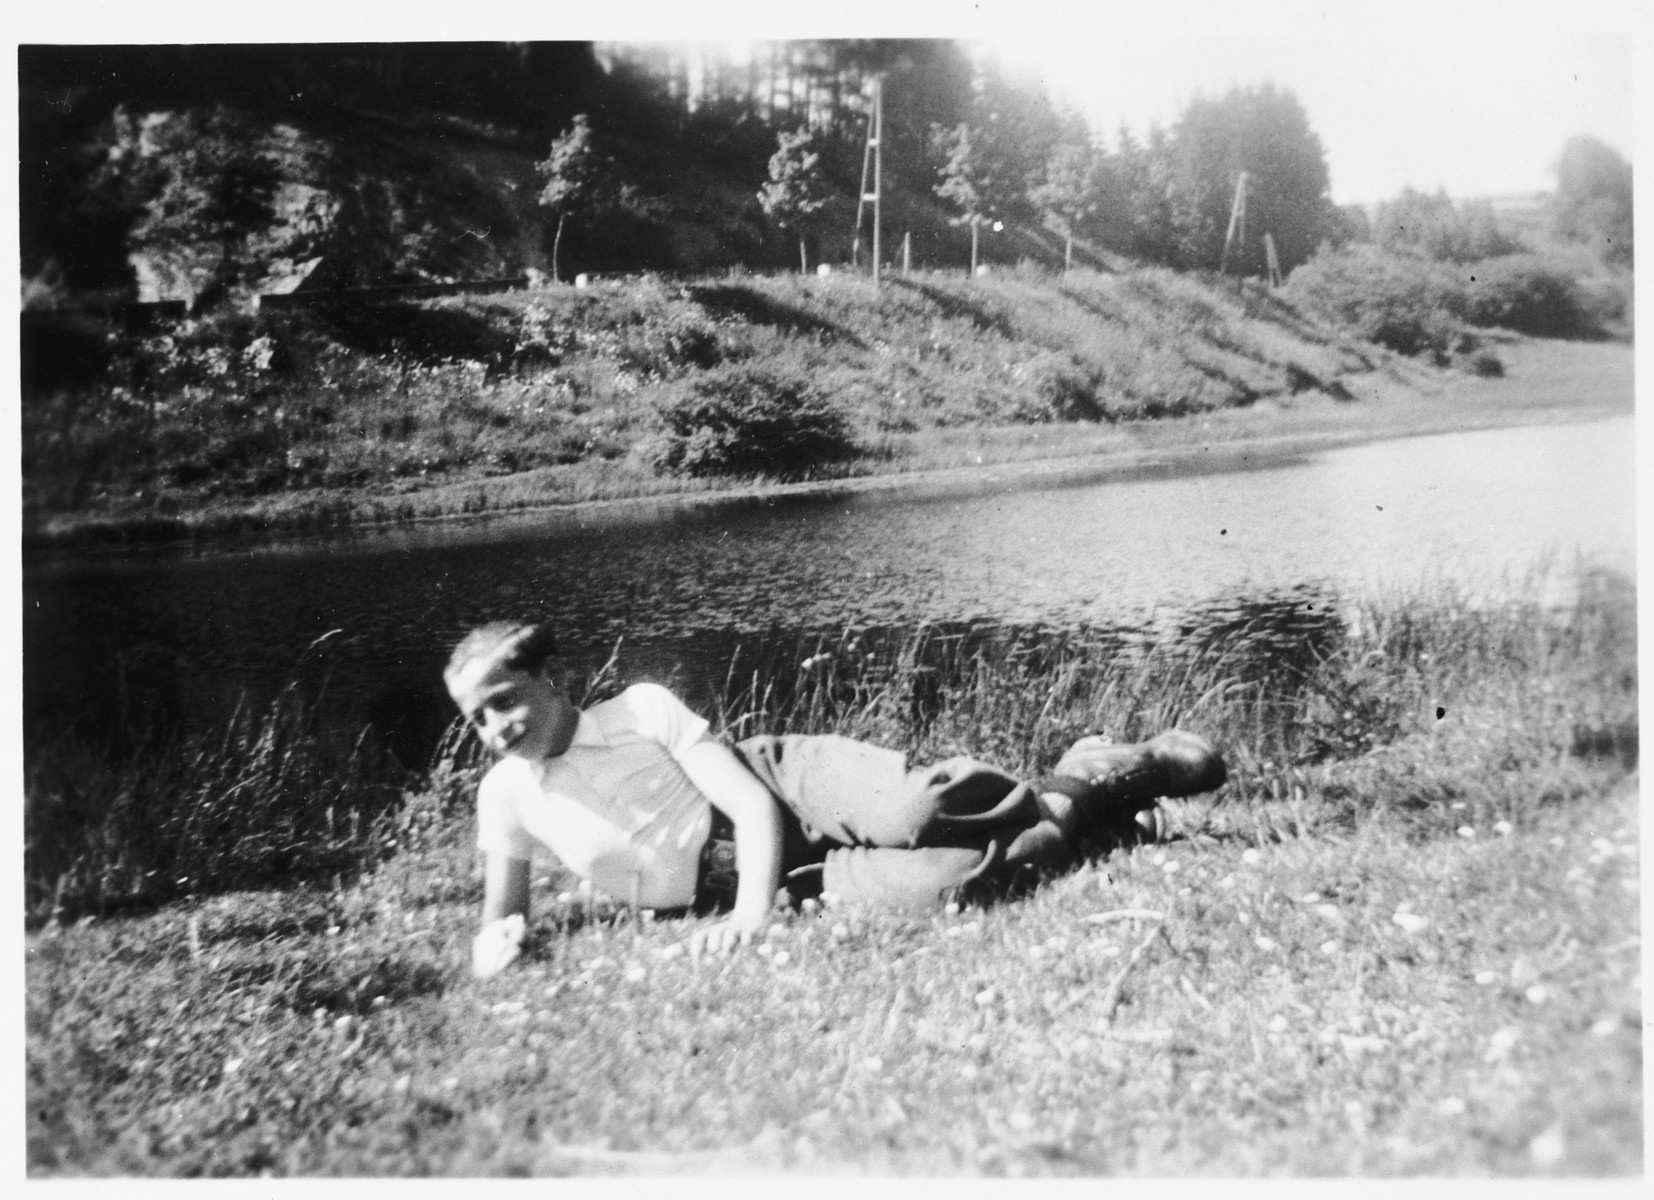 Jeannot, a young boy rescued by the priest Edouard Robert, lies down on the banks of a river.